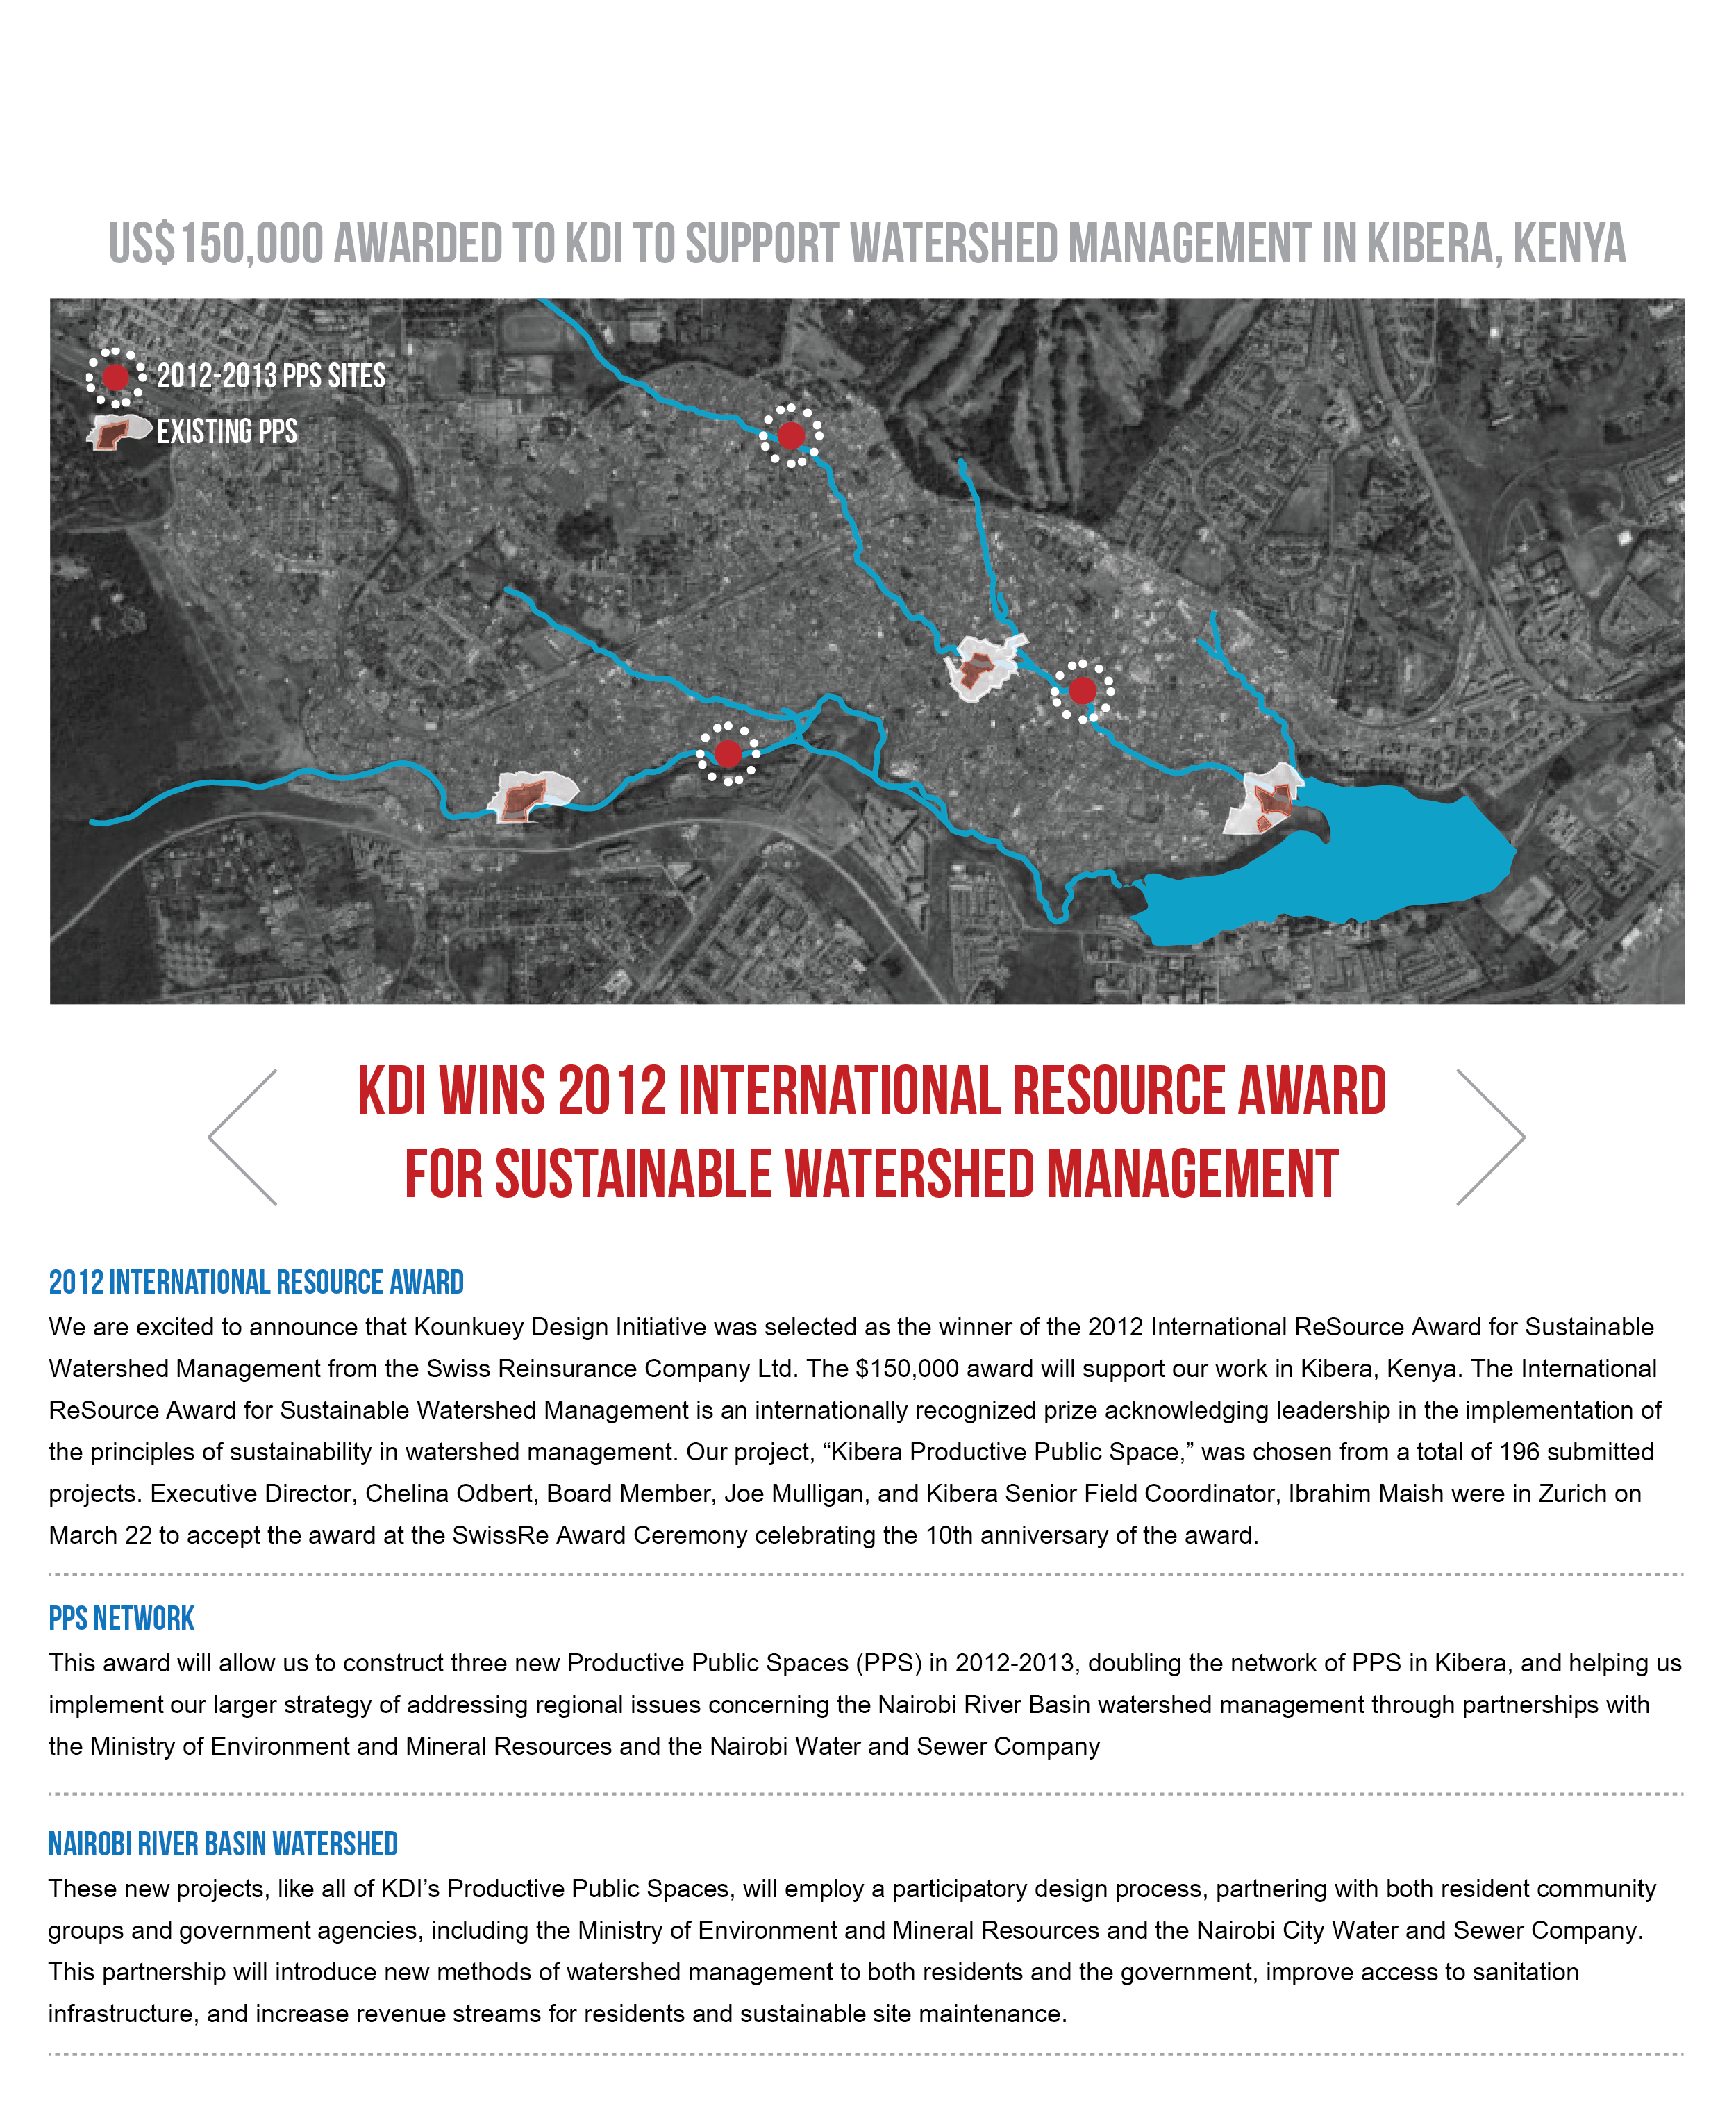 KDI Wins 2012 International Resource Award for Sustainable Watershed Management